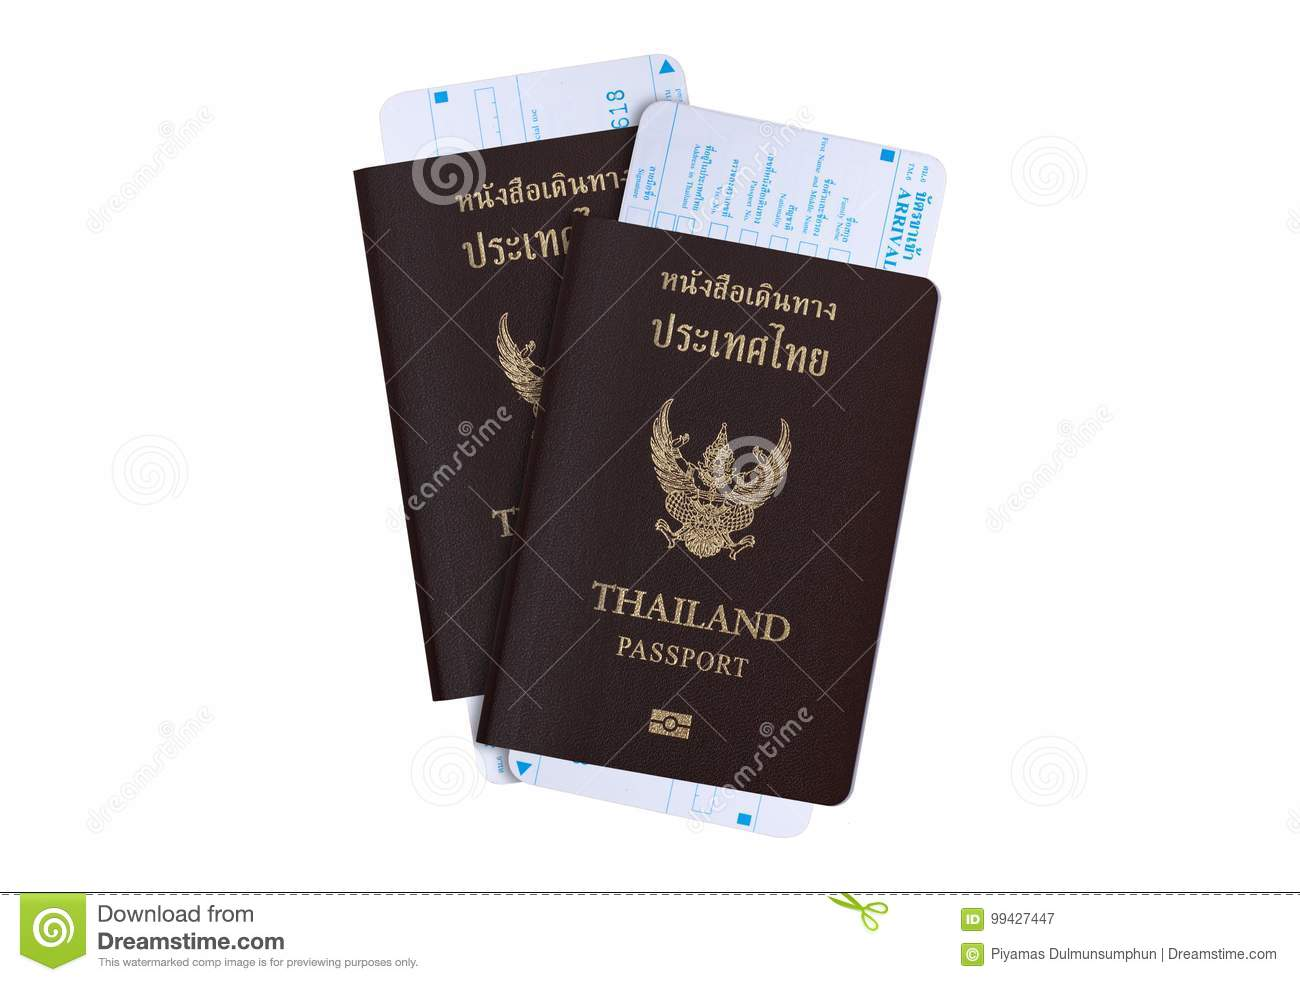 Tourist visa travel industry concept: Thailand passport